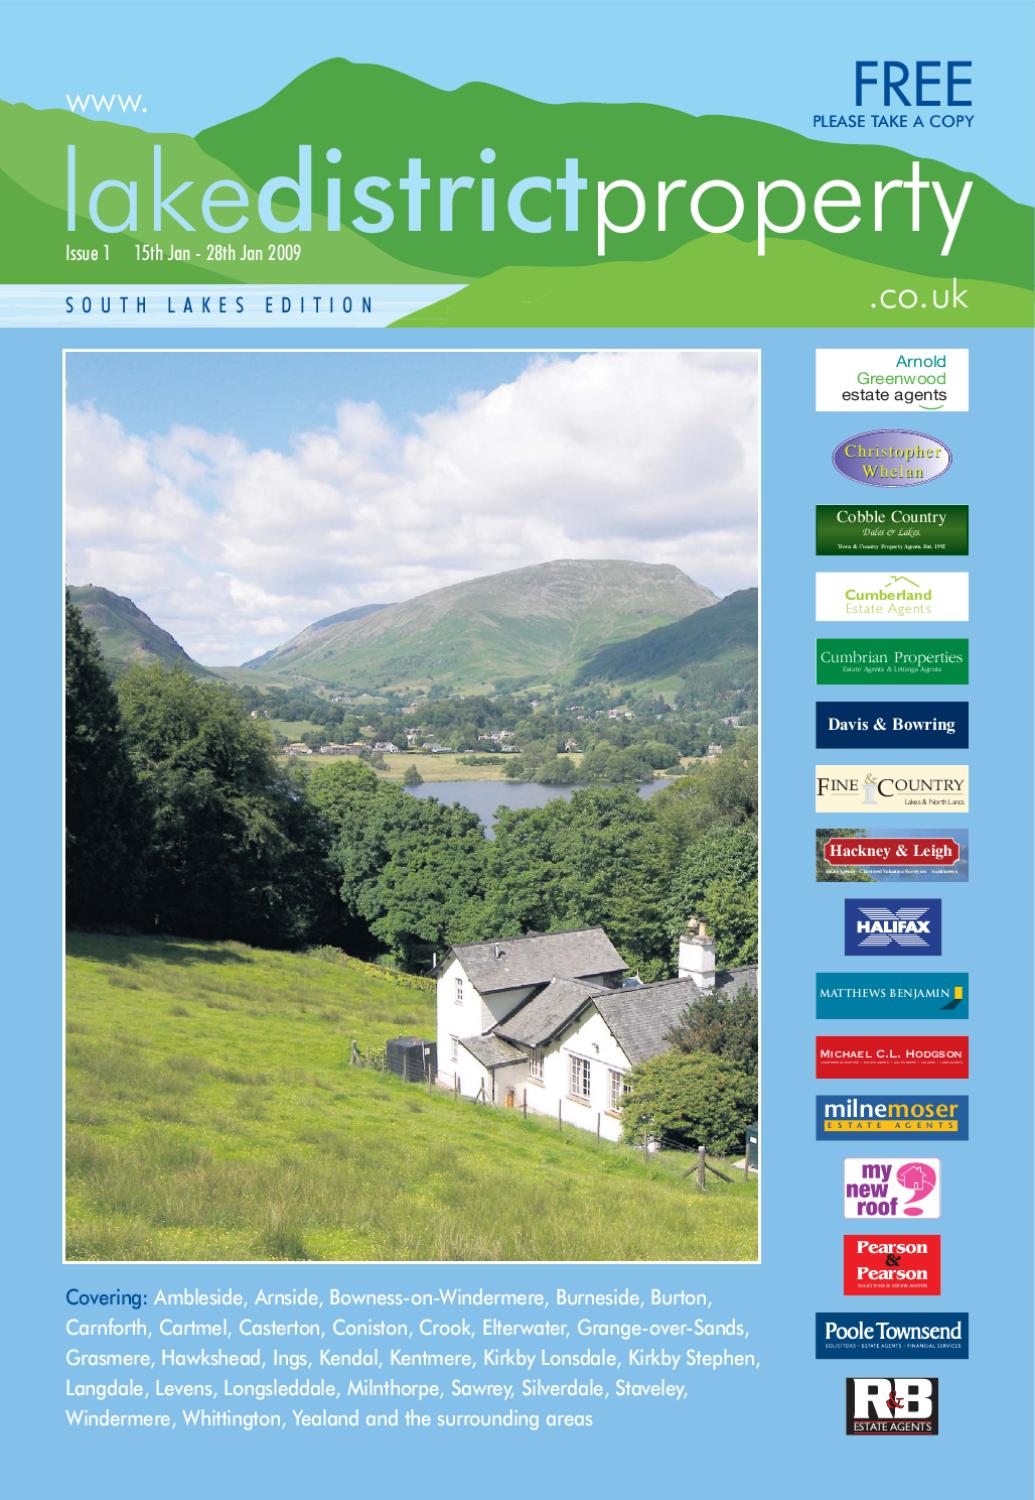 Lake District Property by Mark Wilks - issuu on